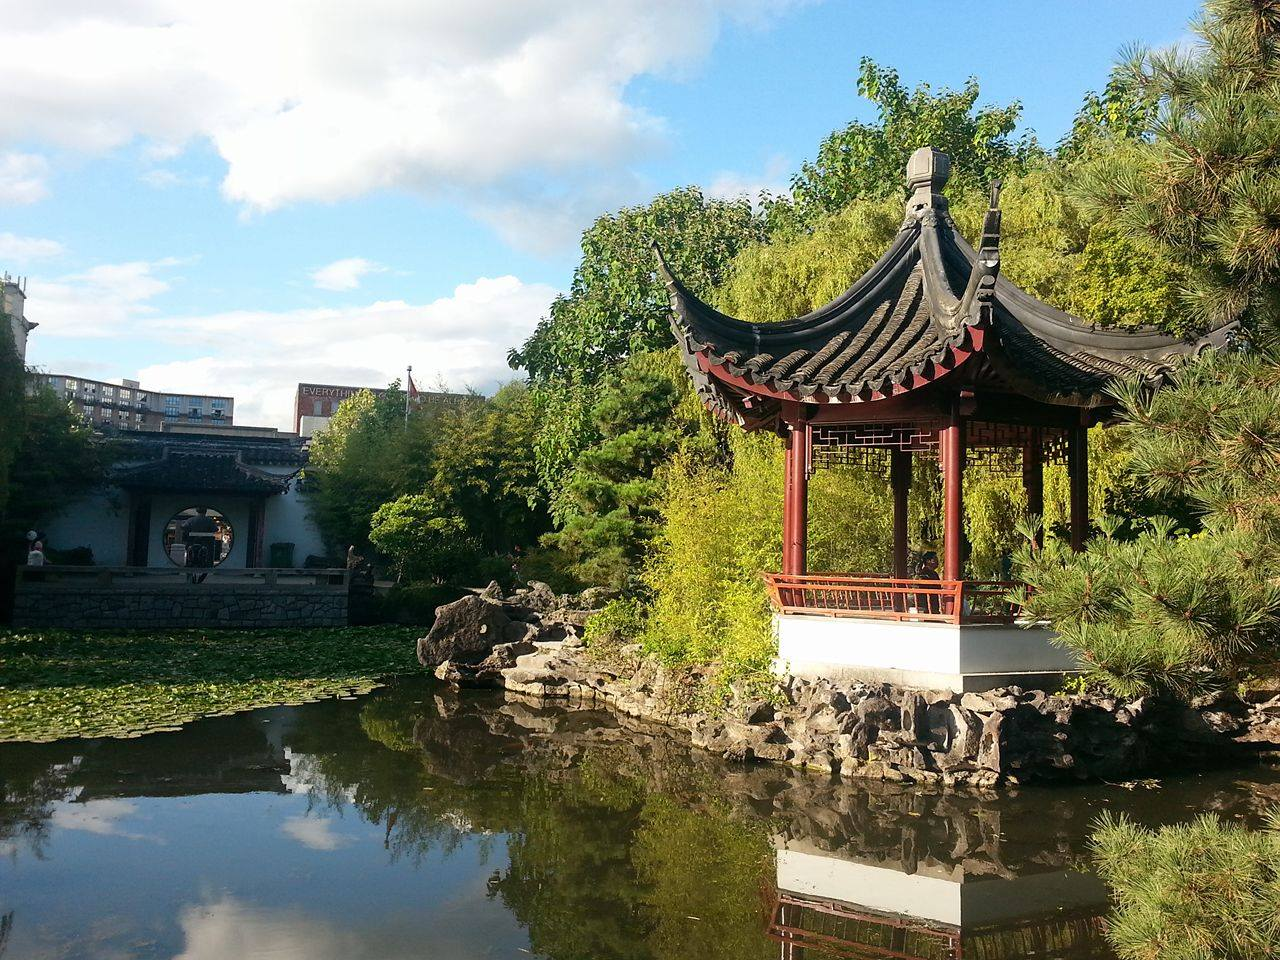 Image of Dr. Sun Yatsen Classical Garden in Chinatown